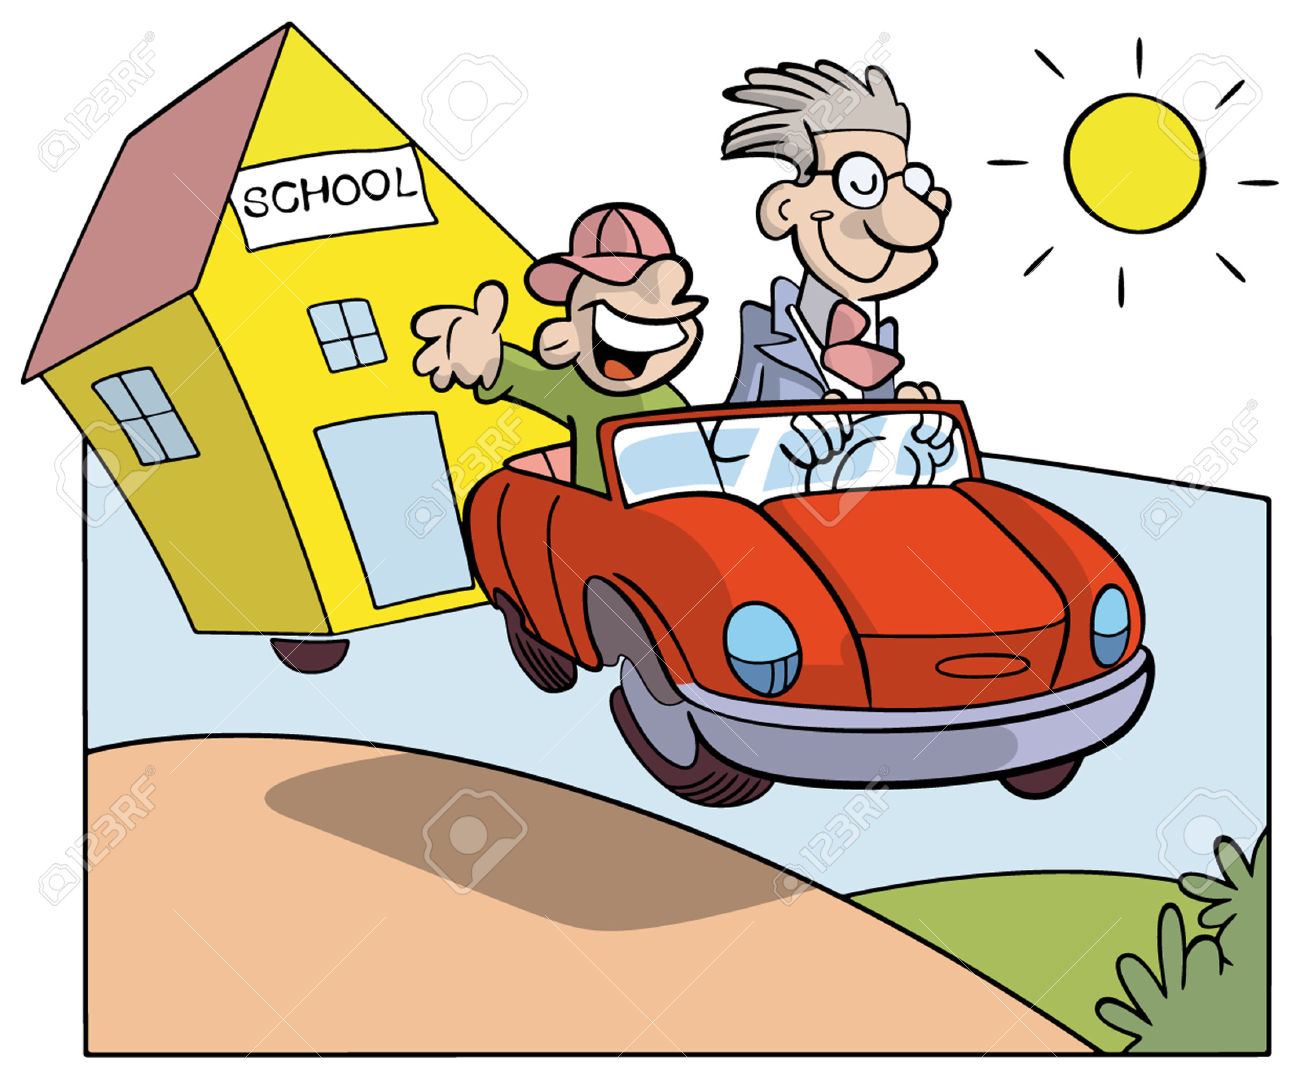 Clipart School Car.